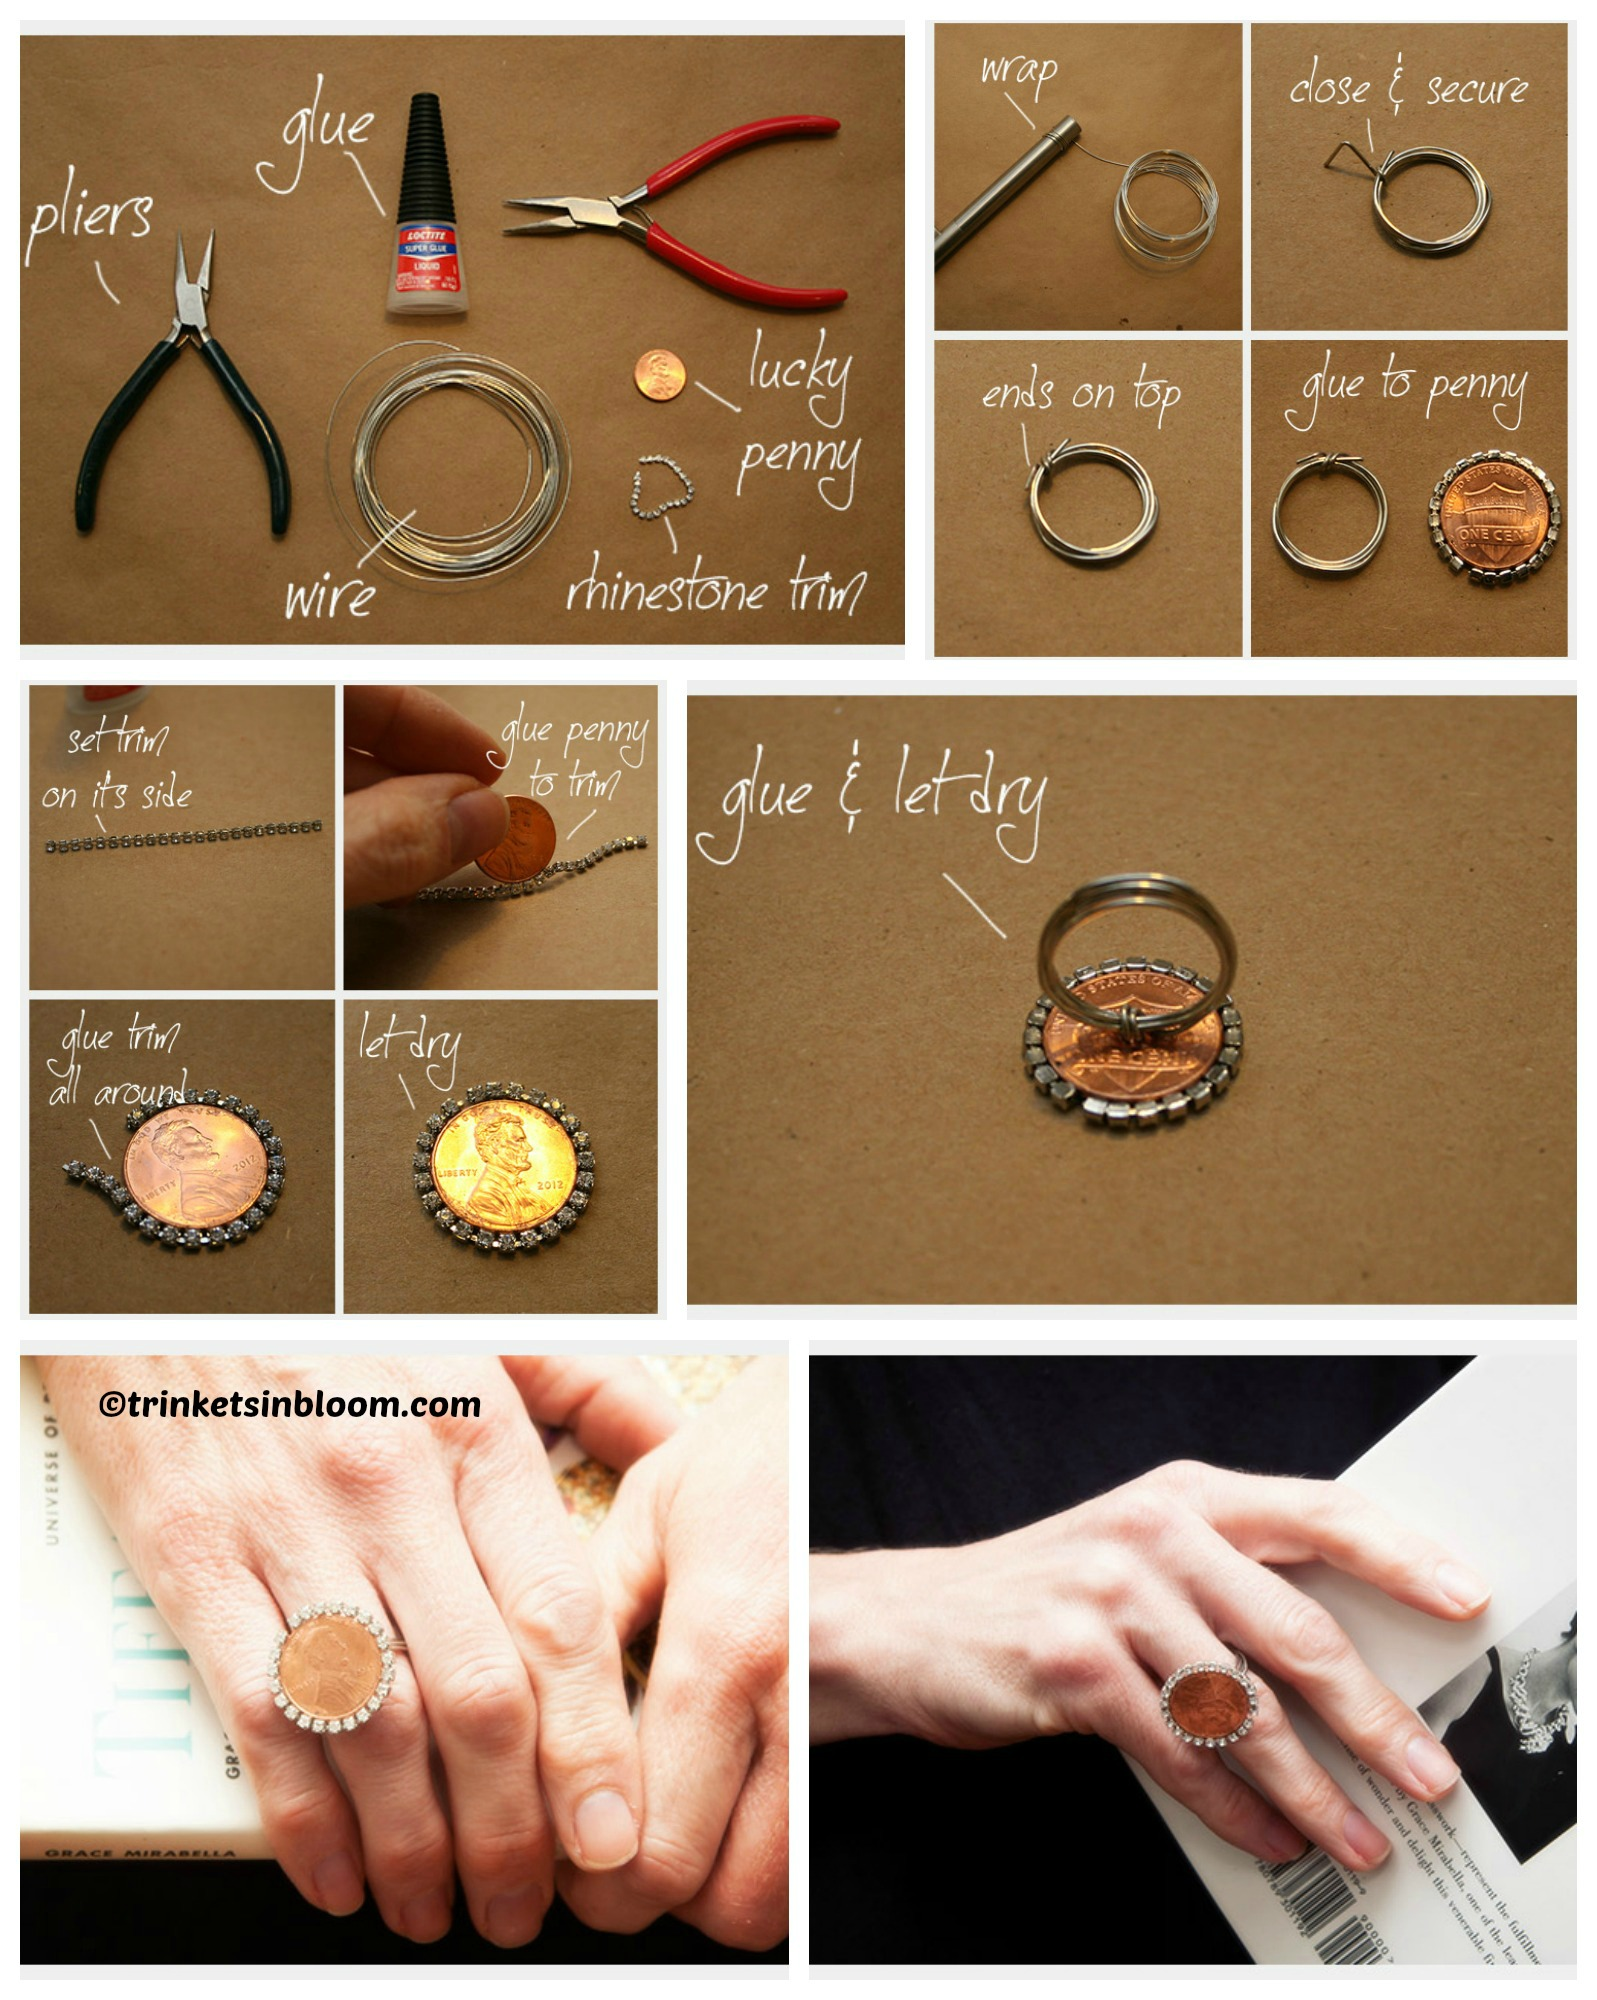 How to make a Penny Ring